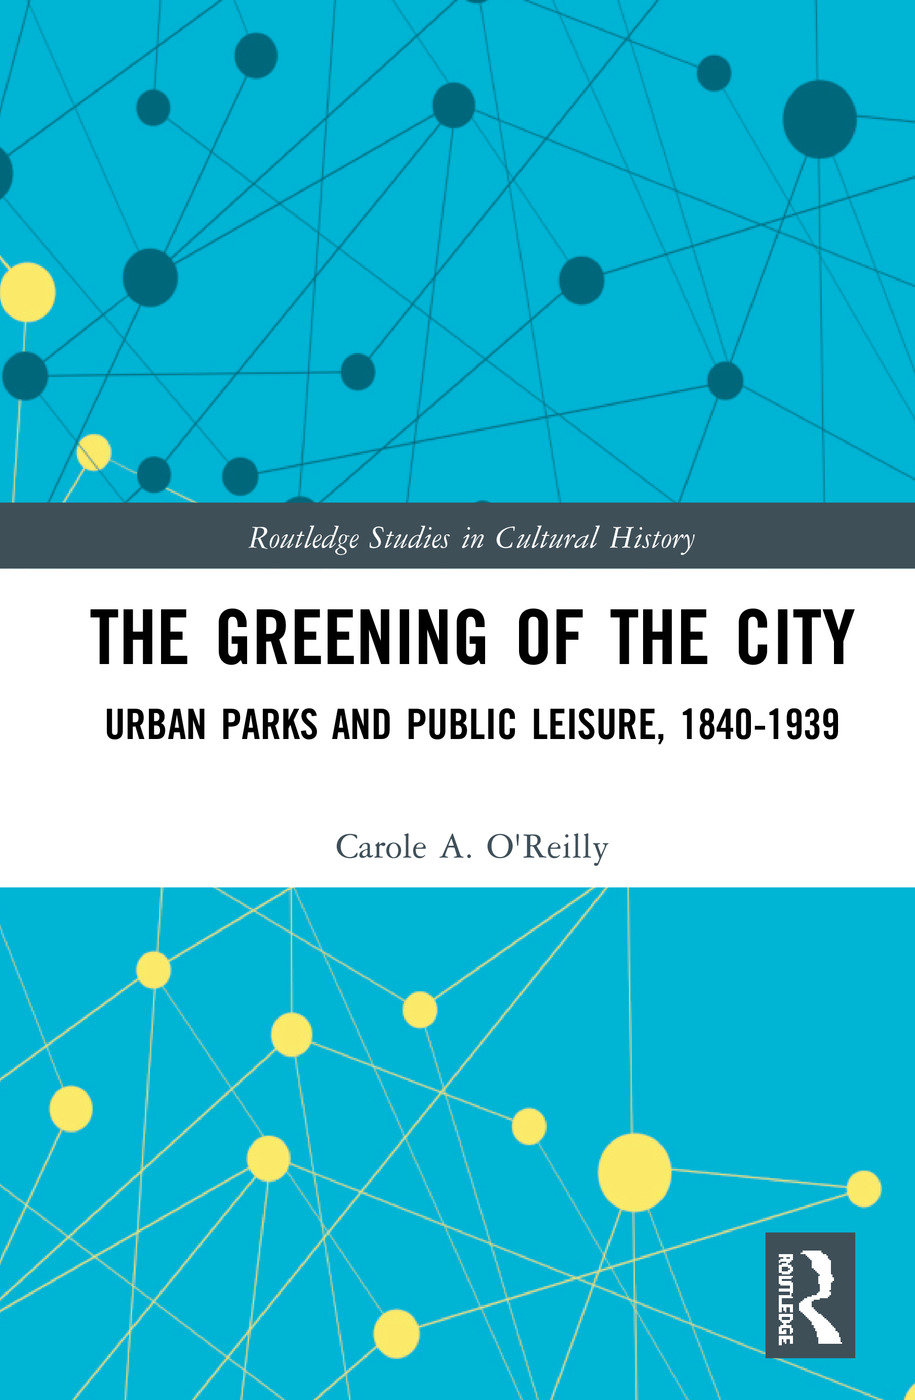 The Greening of the City: Urban Parks and Public Leisure, 1840-1939 book cover